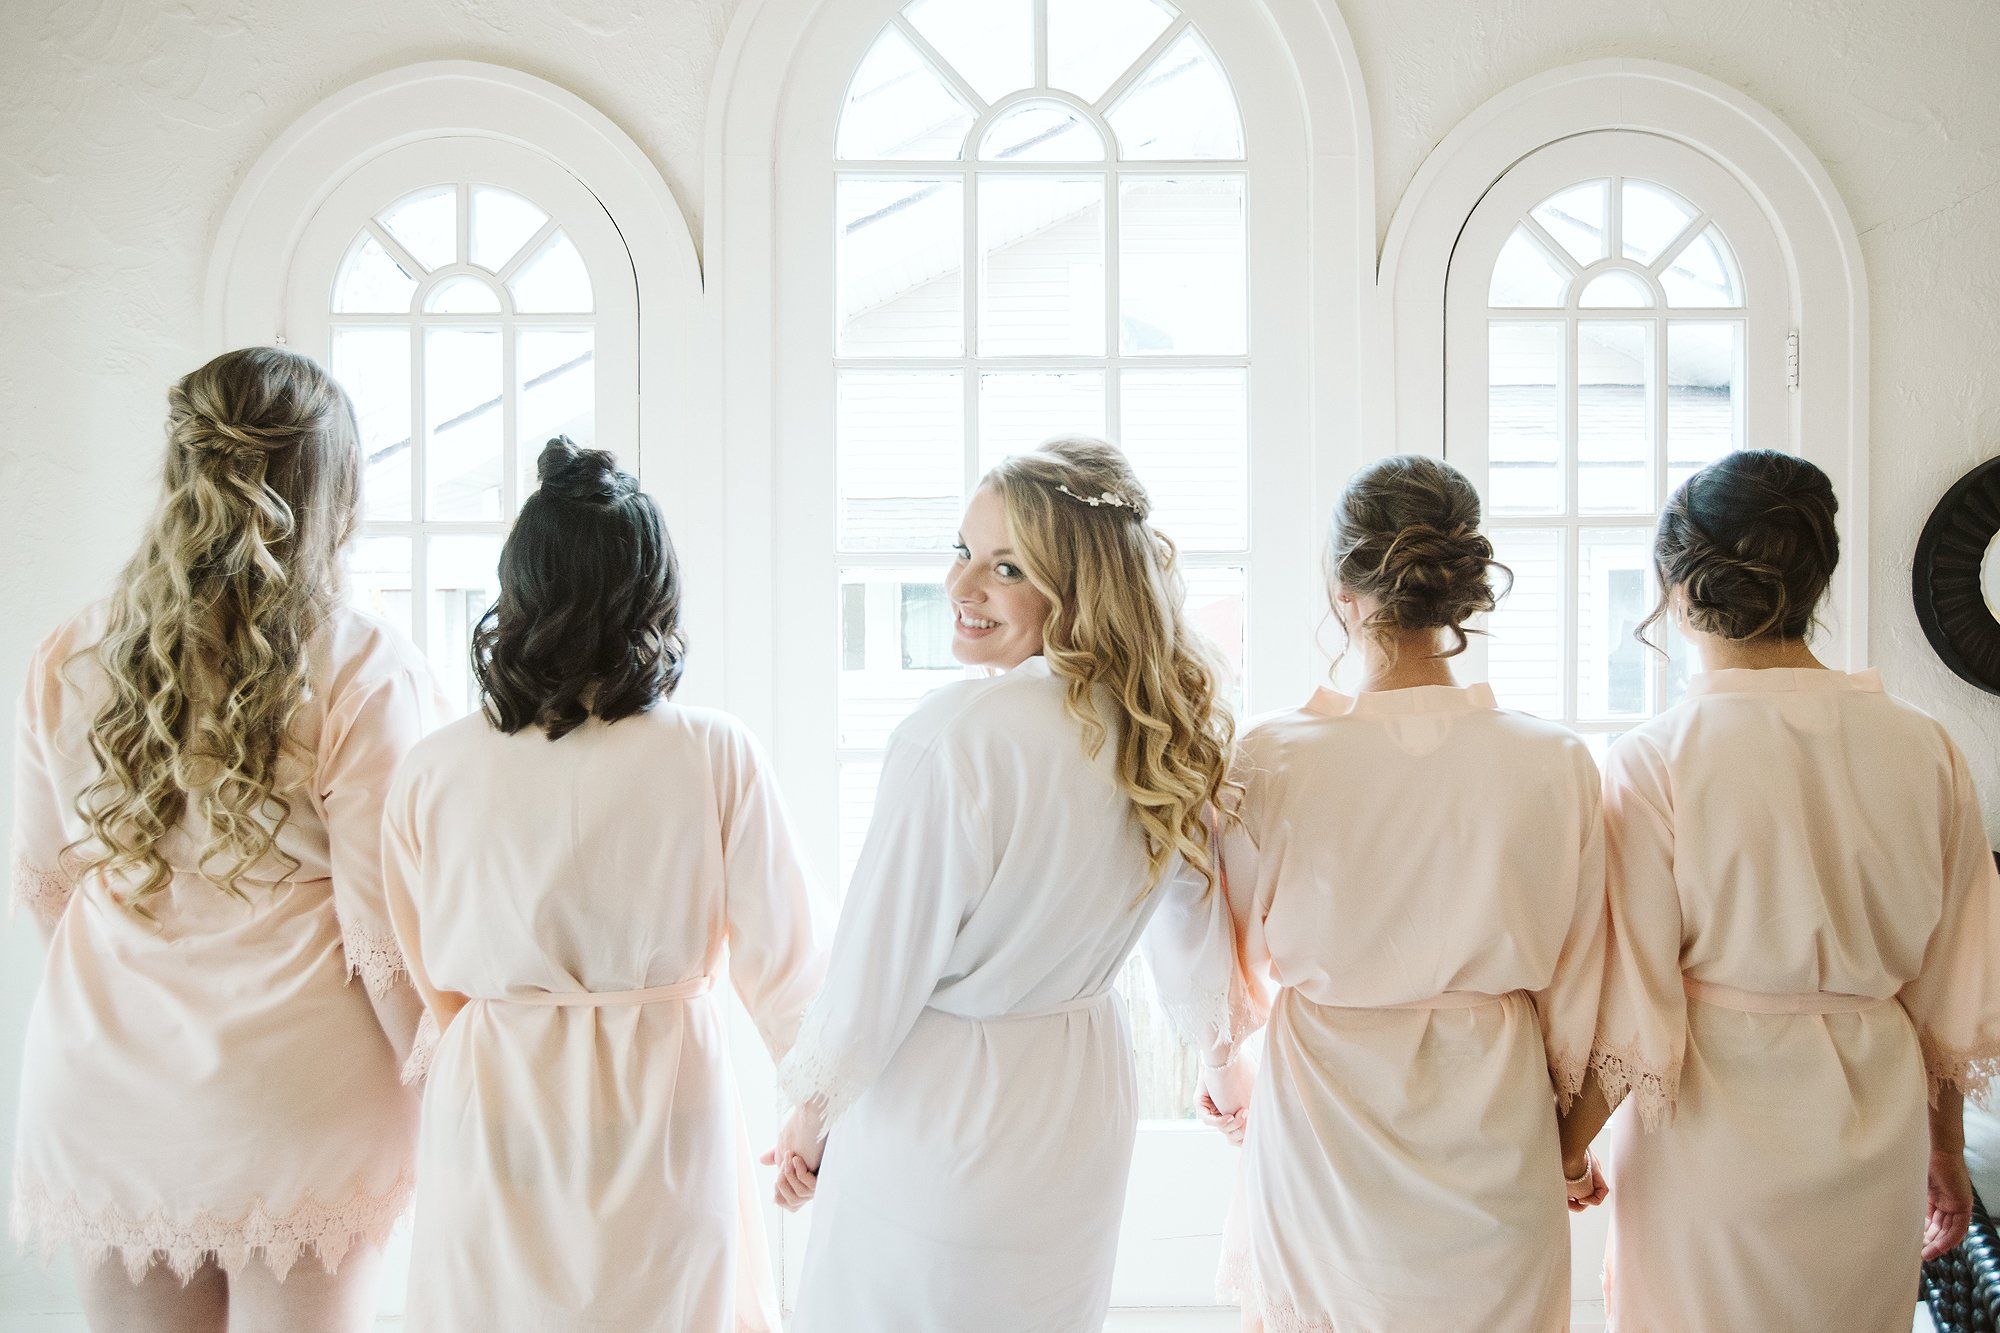 bride and her bridesmaids getting ready on her wedding day